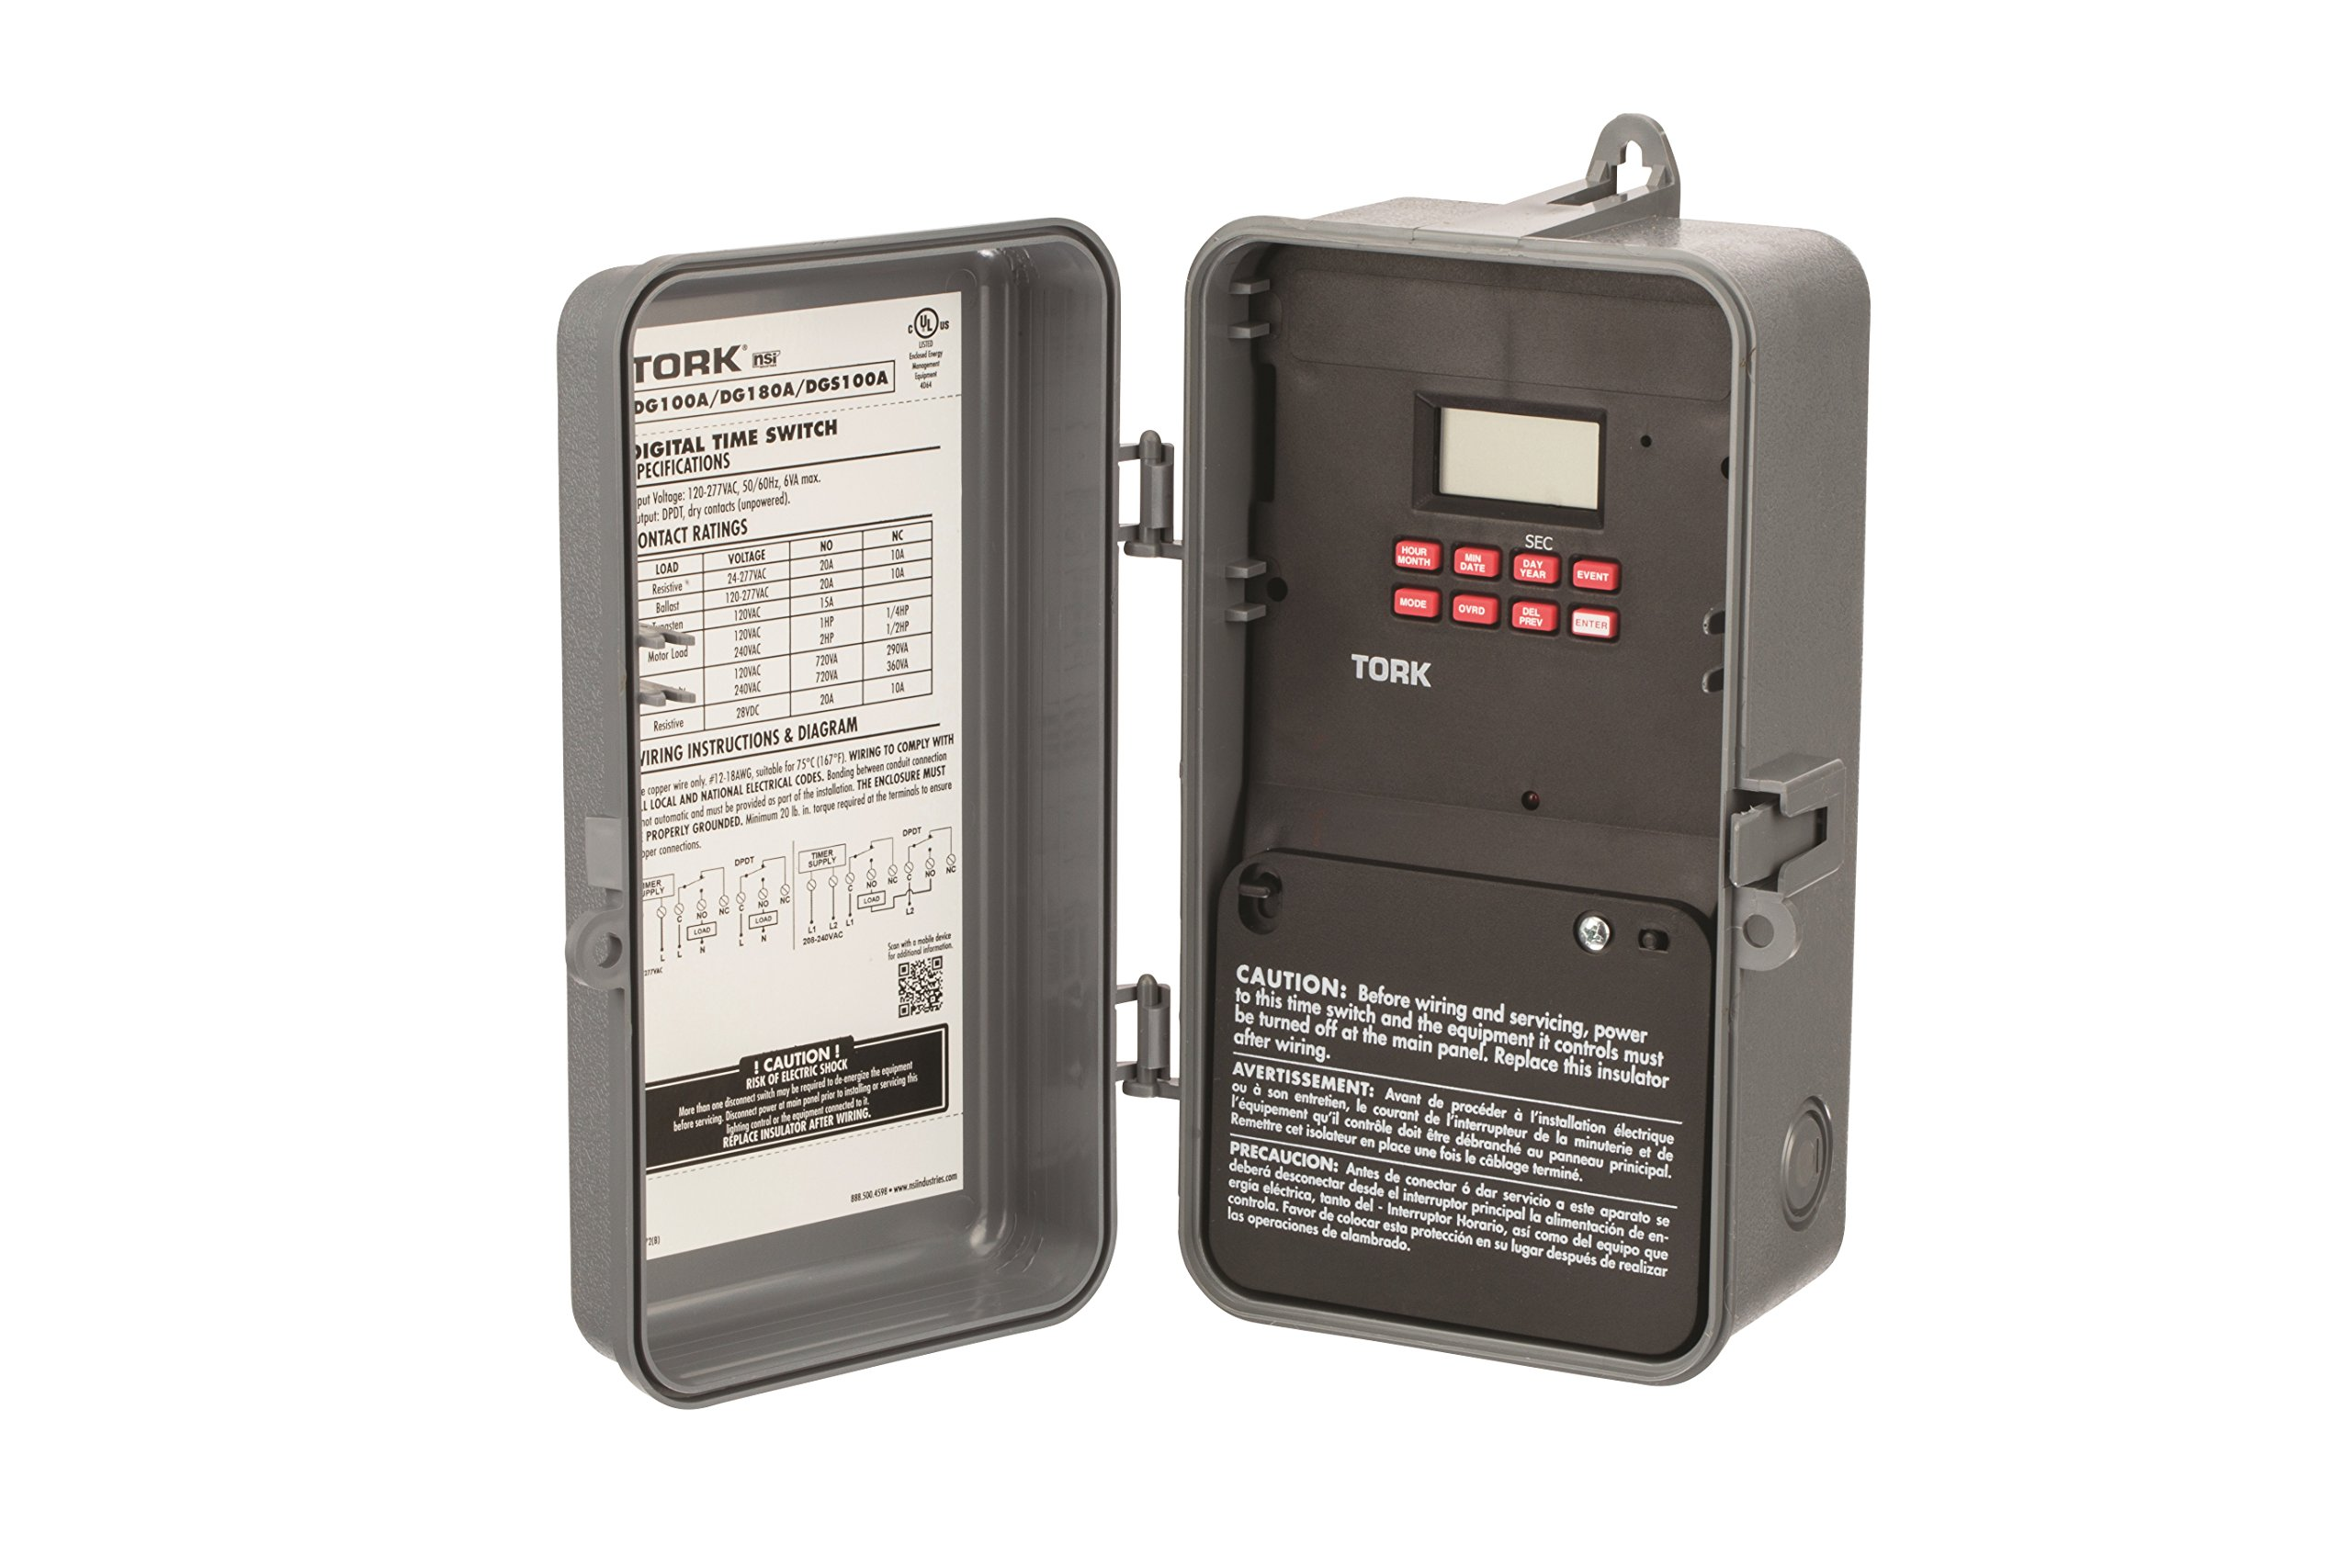 DG100 Series Multipurpose Control 365/7 Day Time Switch, 120-277 VAC Input Supply, 1 Channel, DPDT Output Contact